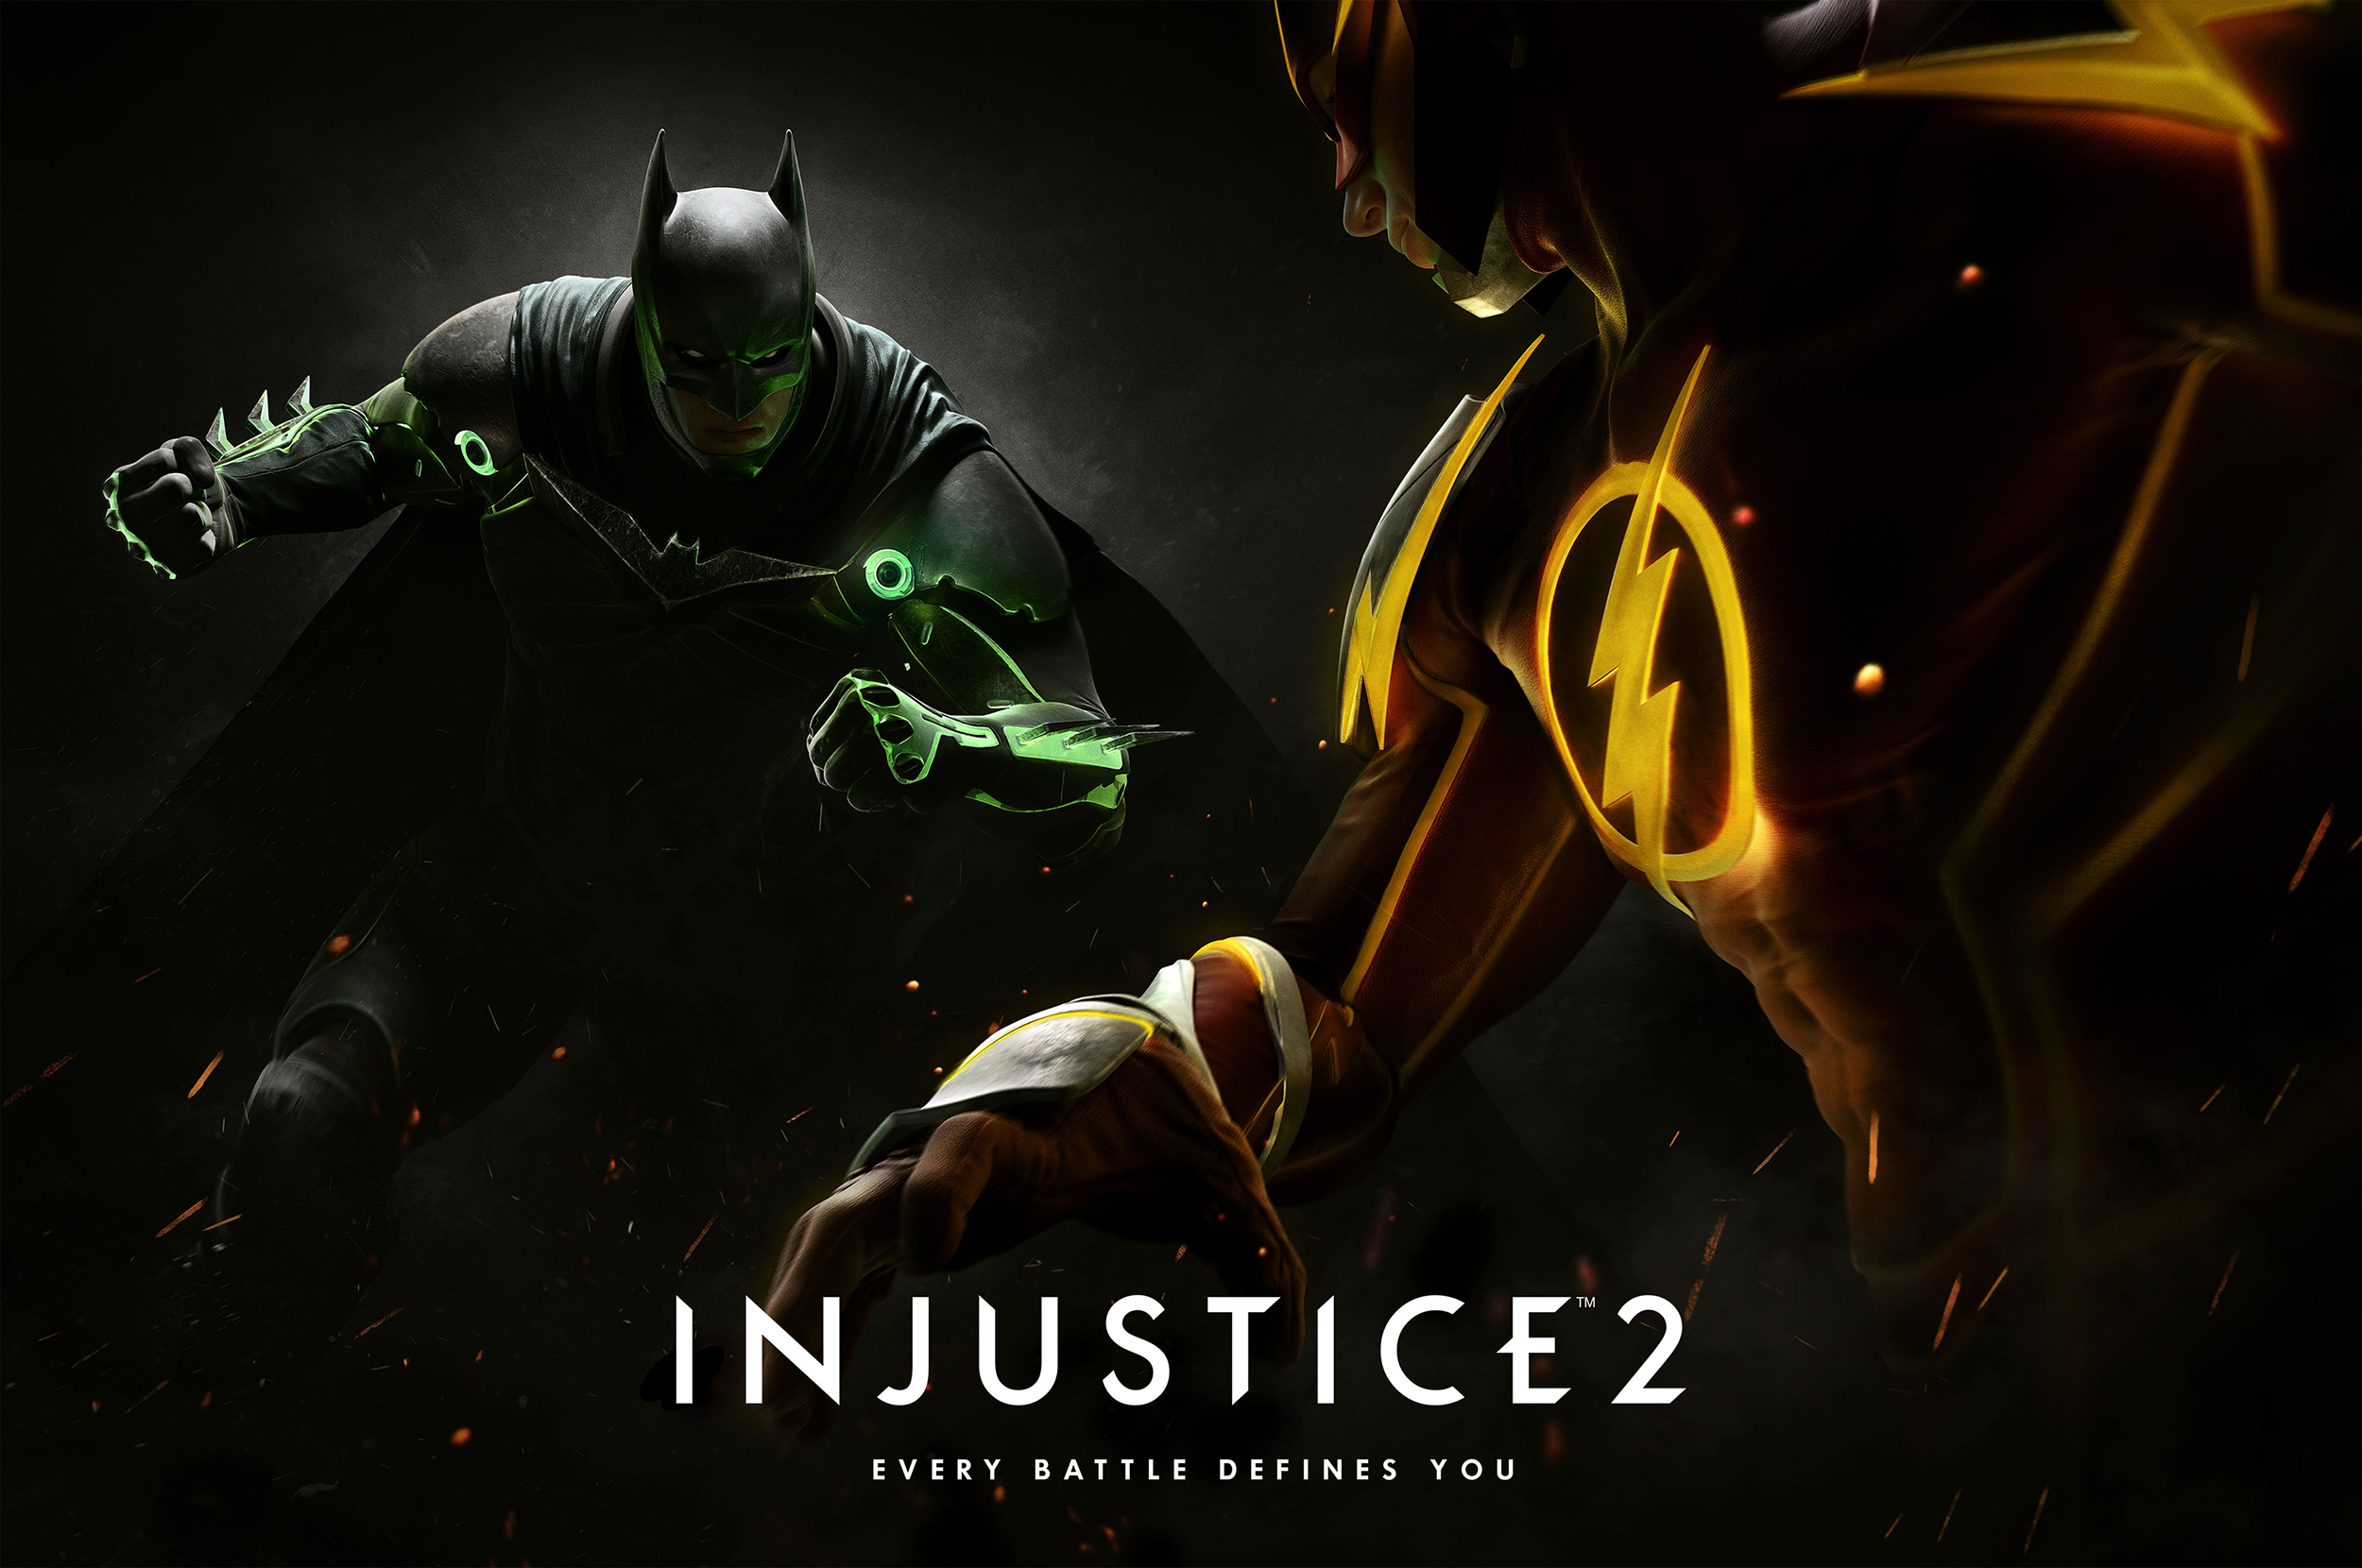 Ed Boon Officially Confirms Injustice 2 Will Release On Mobile Platform